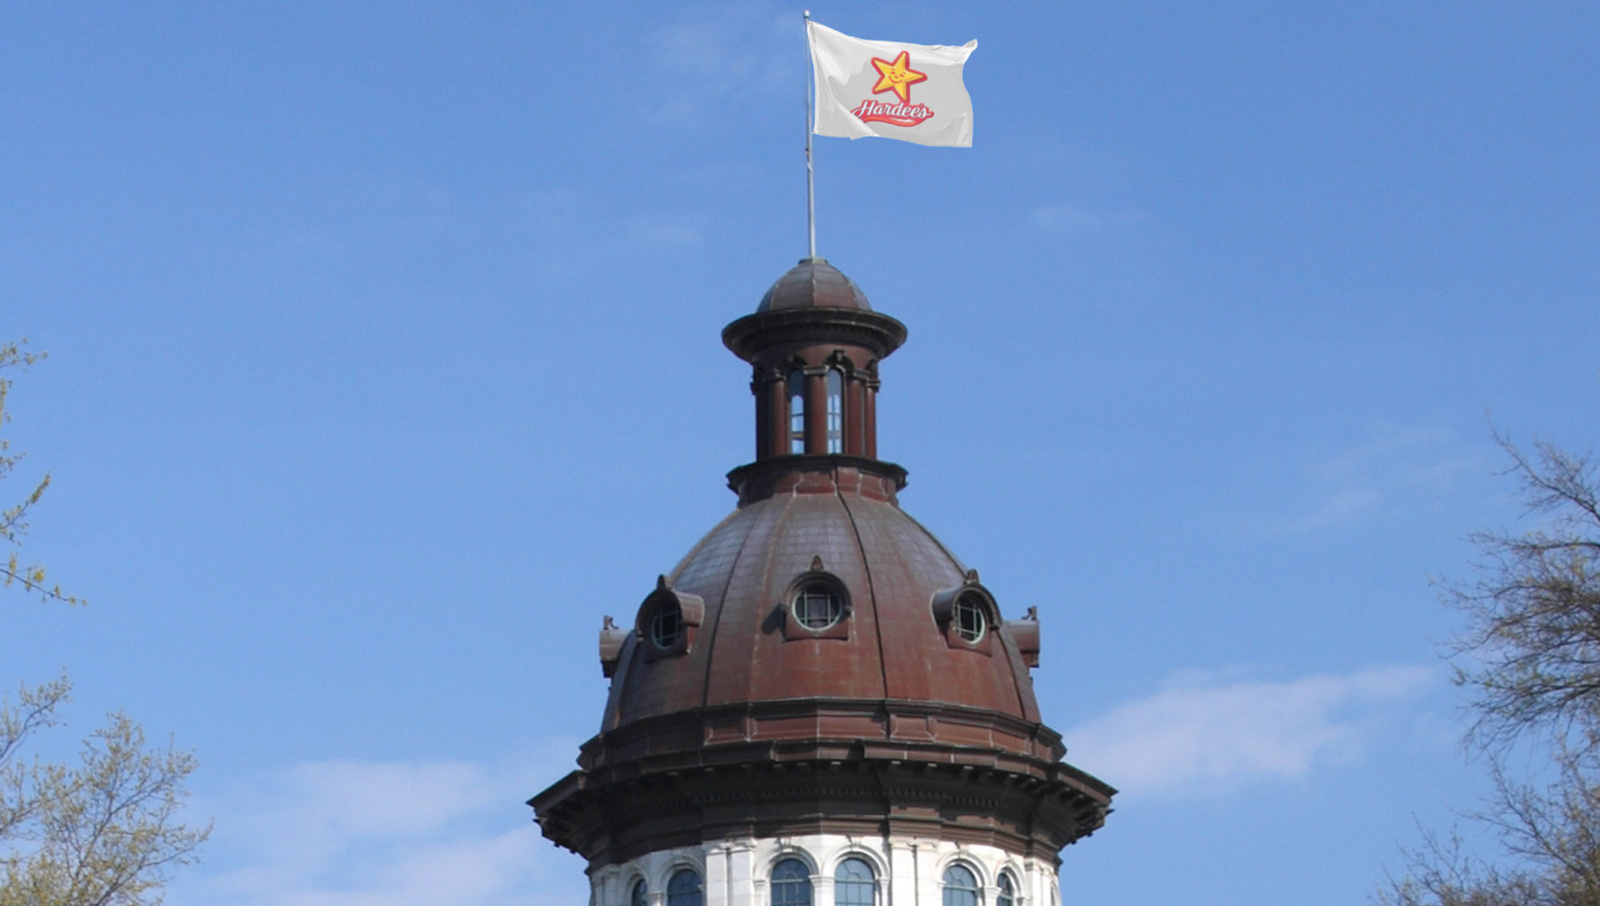 South Carolina Defends Right To Fly Hardee's Flag From State Capitol